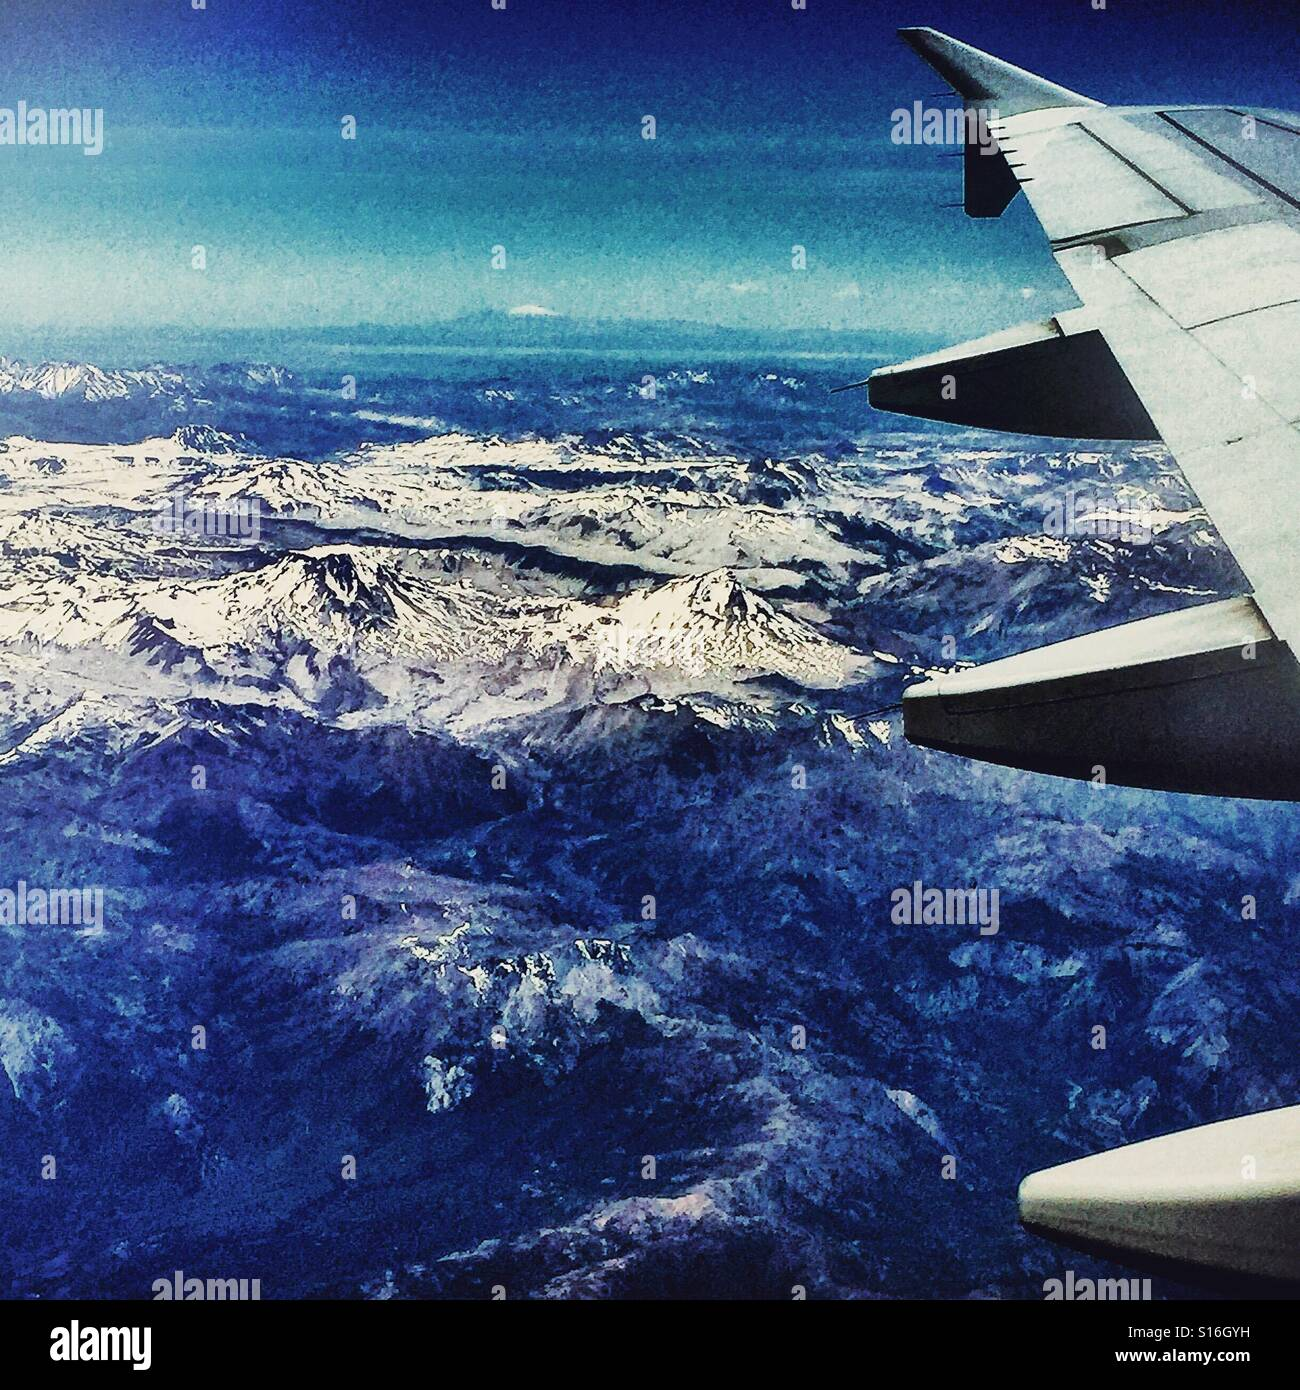 Flying alongside the Cordillera de los Andes snow-capped mountain range, south from Santiago, Chile - Stock Image